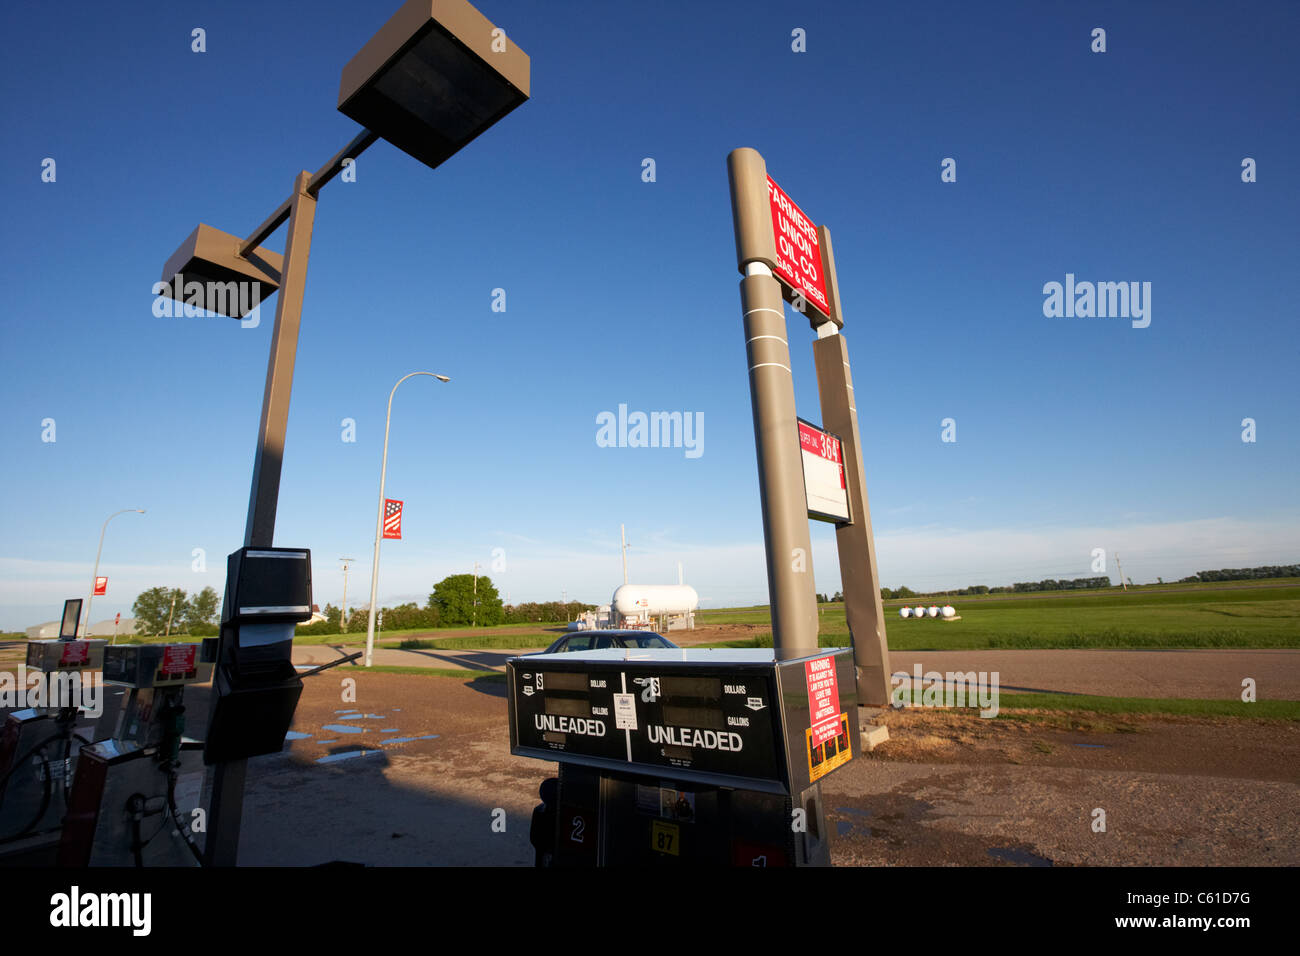 petrol pumps at farmers union oil company gas and diesel station in rural michigan north dakota usa - Stock Image